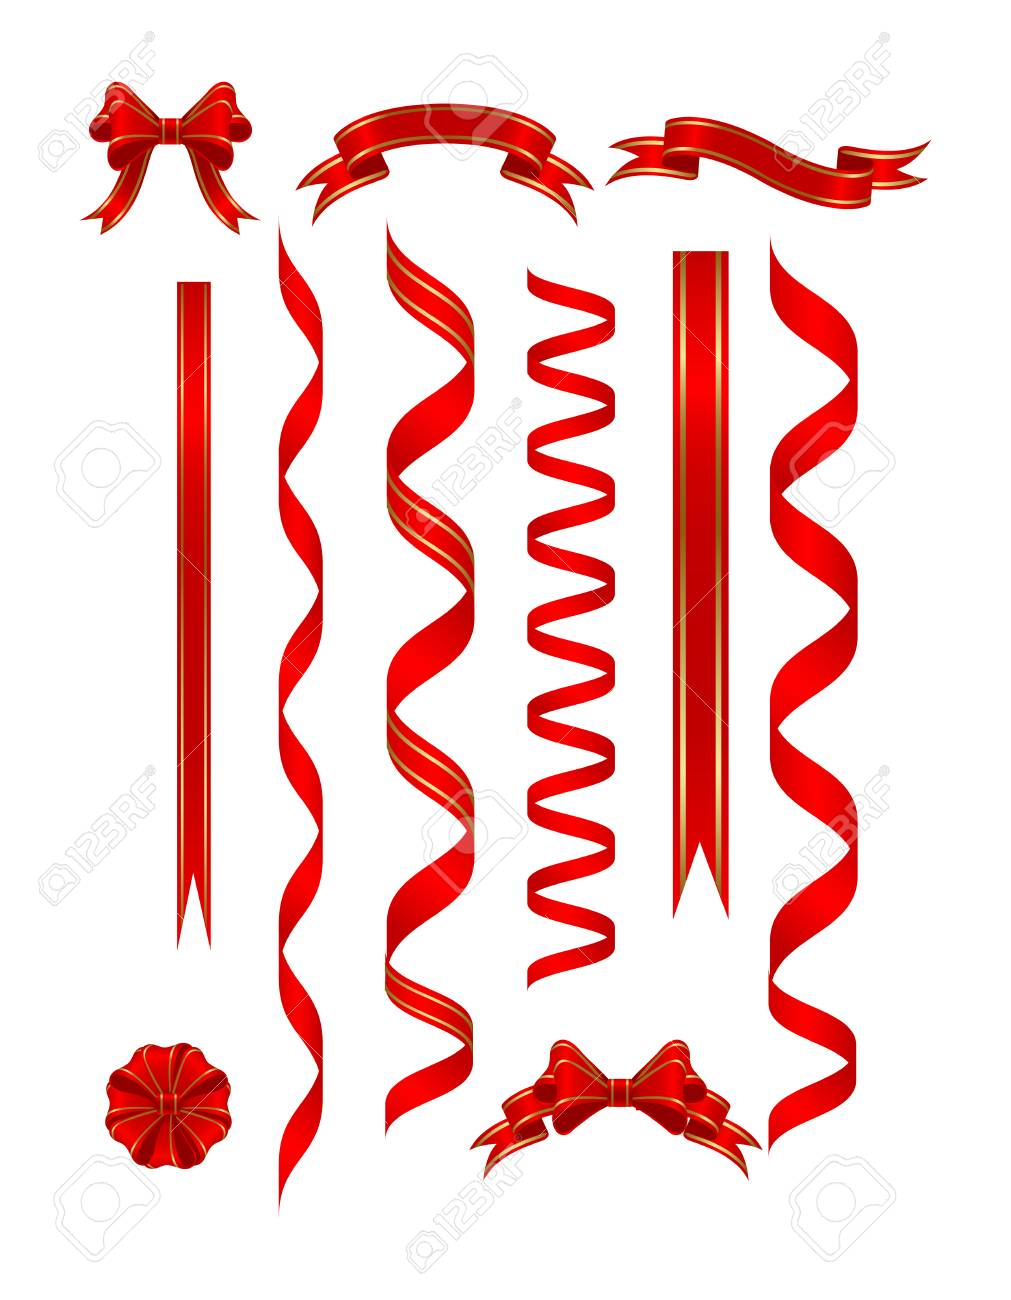 Red banners isolated on a white. vector illustration Stock Vector - 5520152